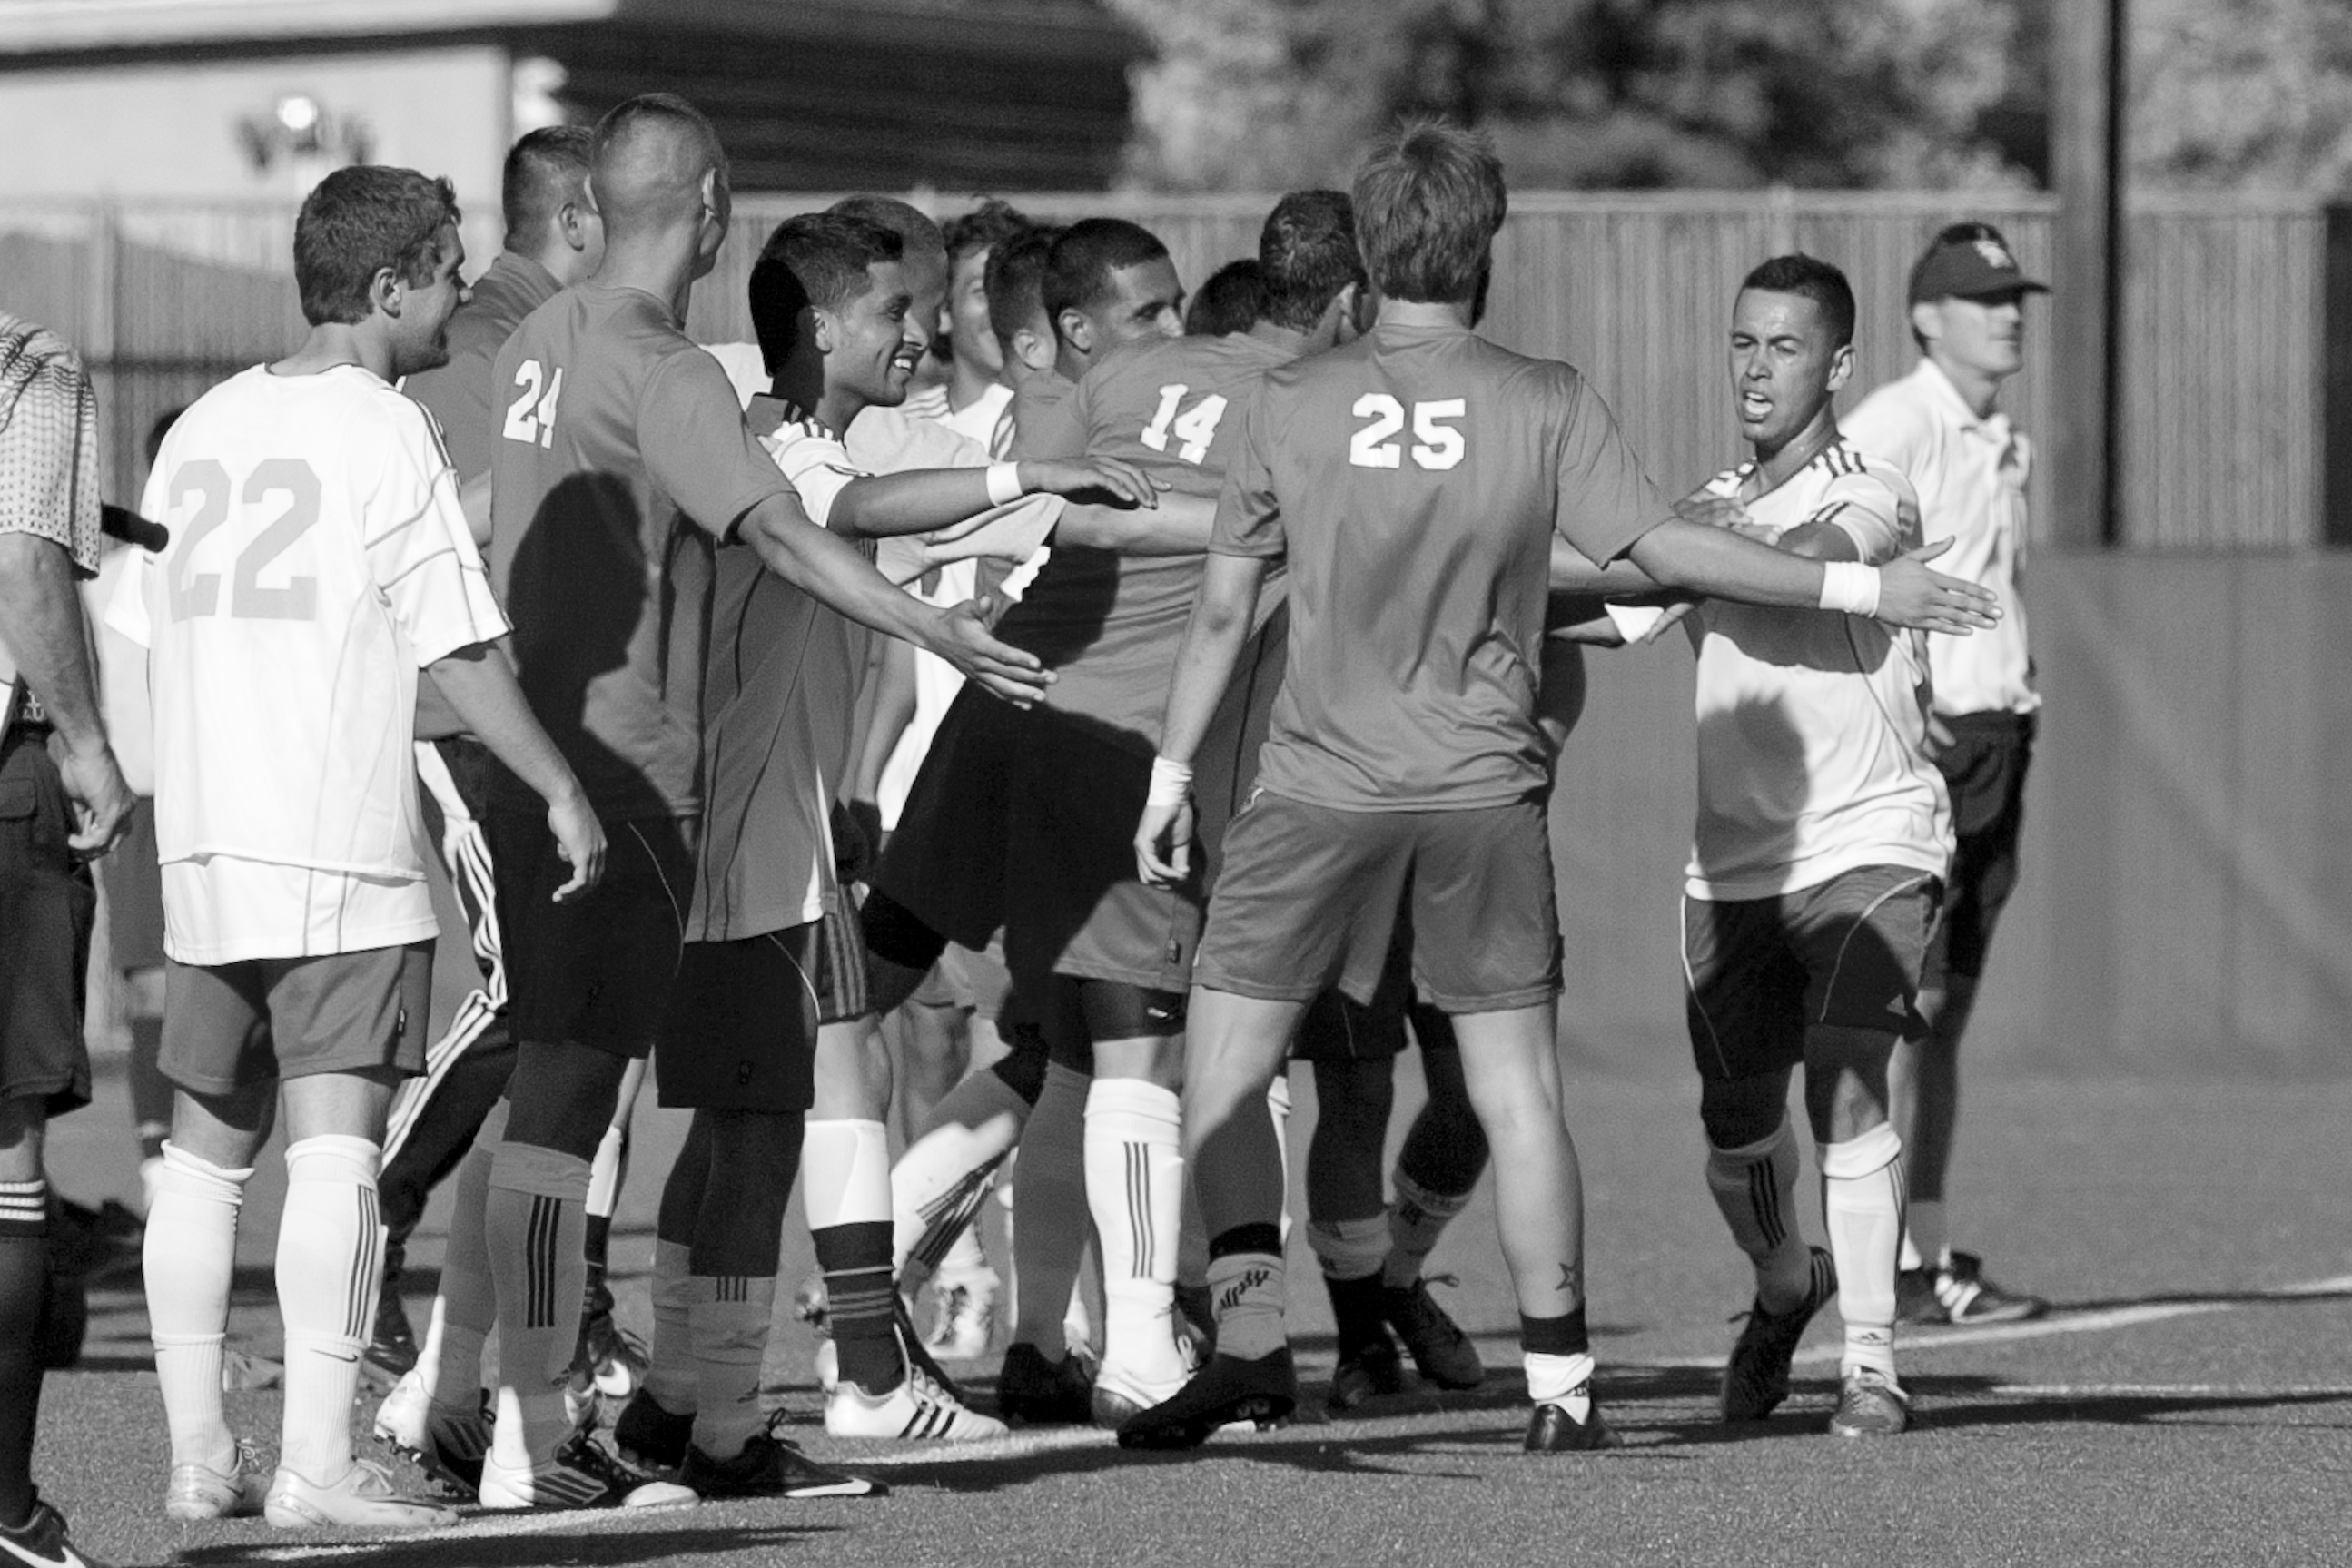 Sophomore Forward Arnulfo Garcia, on right, is greeted by fellow teammates after scoring the second goal for City College during an away game versus the Santa Rosa JC on Friday Sept. 14, 2012. Photo by James Fanucchi/The Guardsman